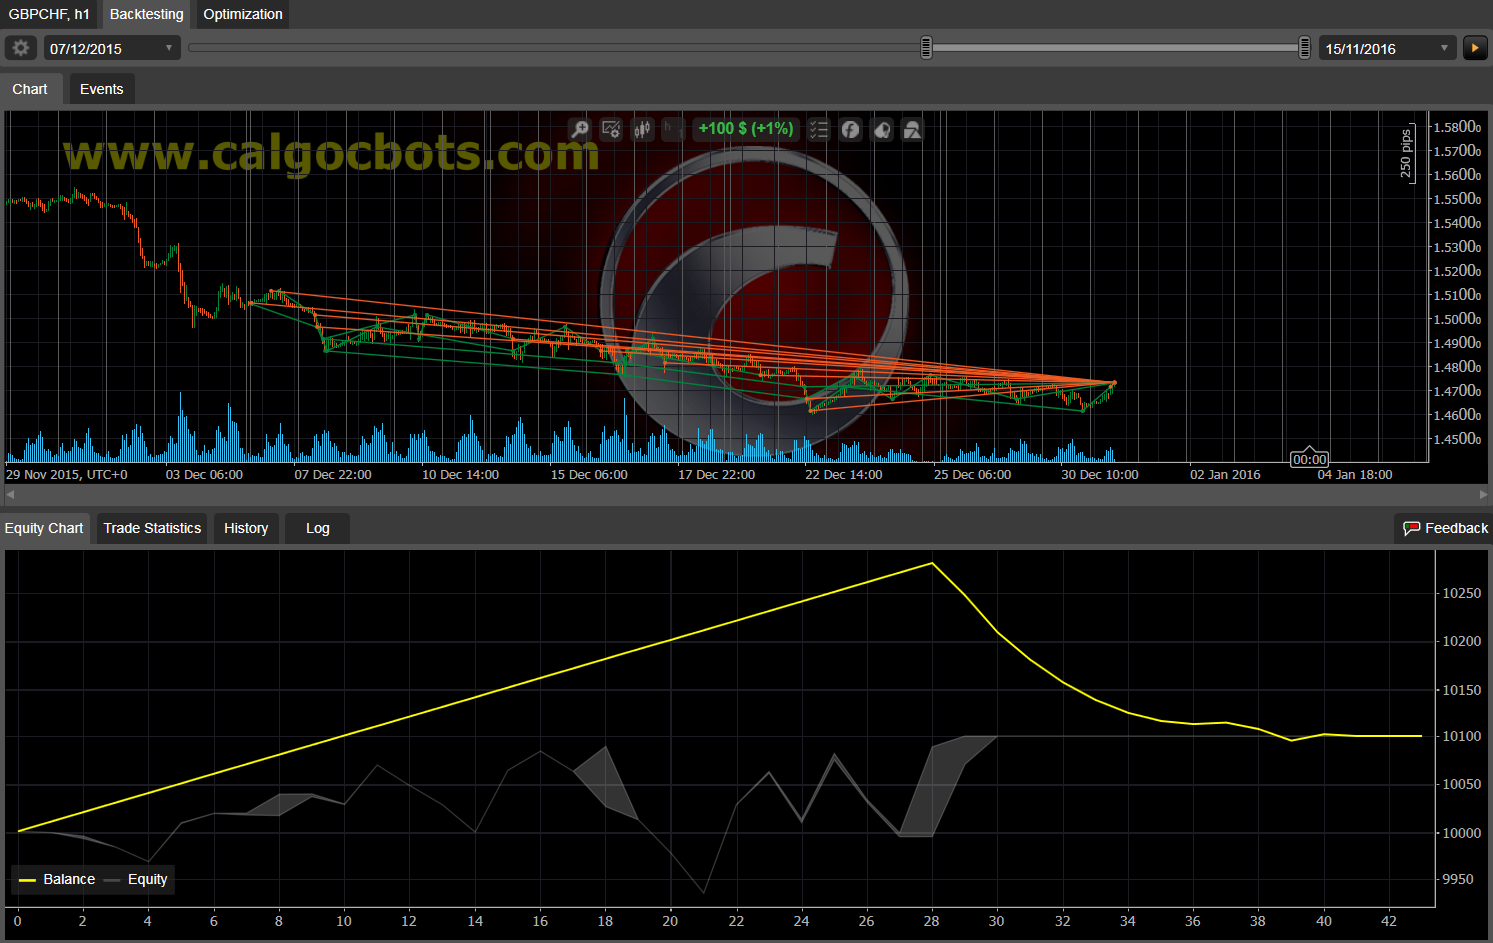 Dual Grid Hedge GBP CHF 1h cAlgo cBots cTrader 100 50 100 - 05